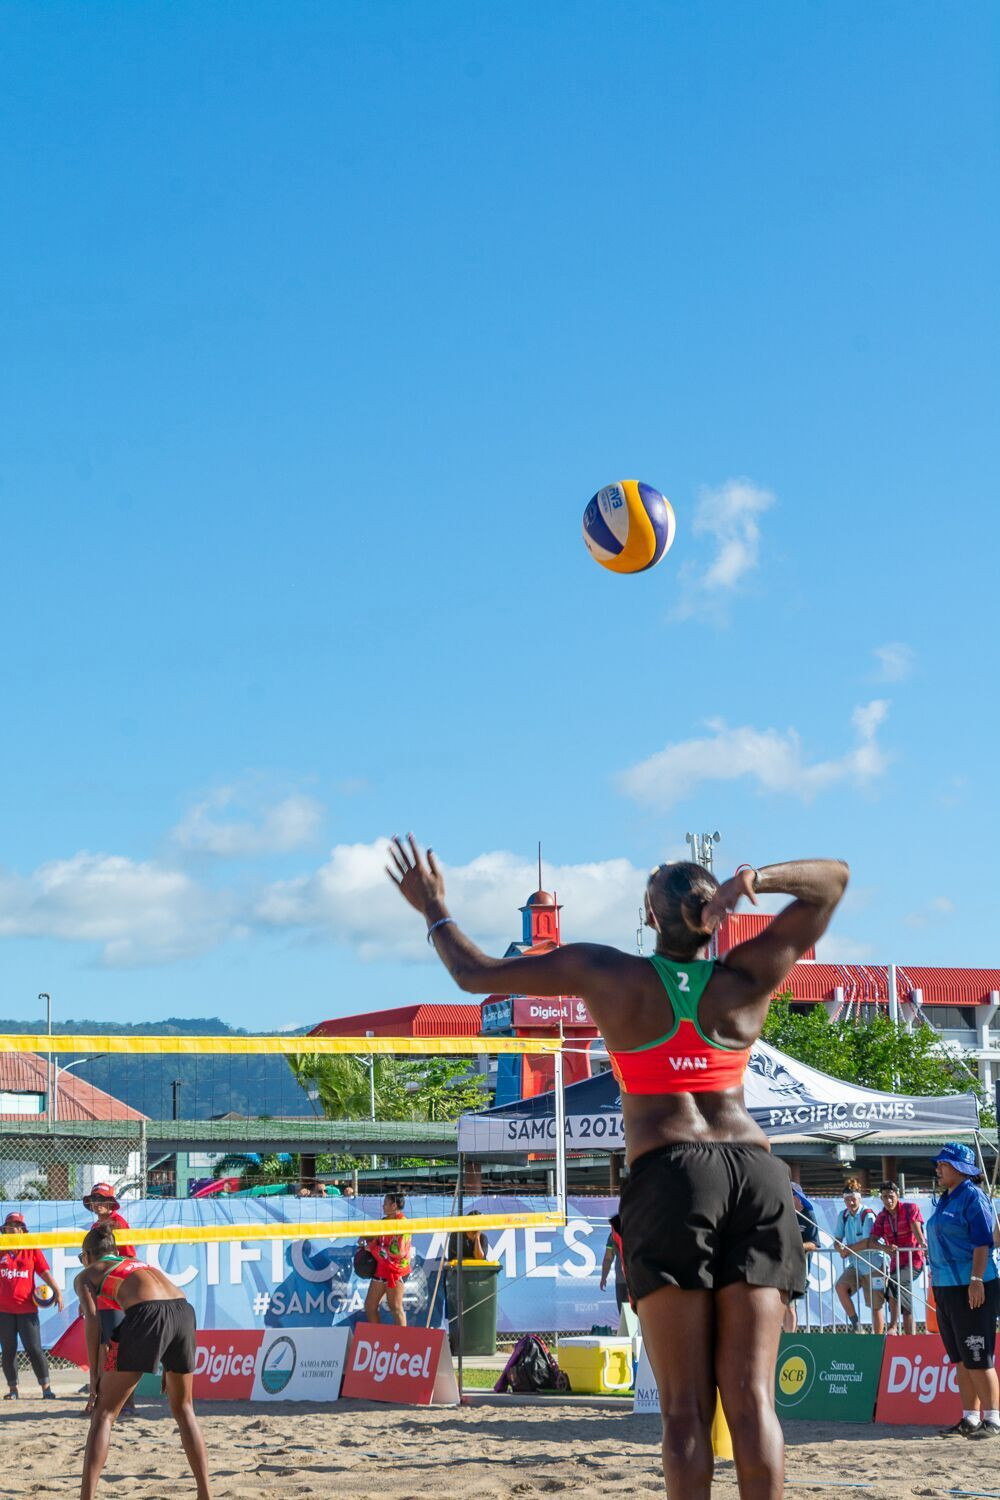 Vanuatu beat Tahiti in the women's beach volleyball final in blisteringly hot conditions ©Samoa 2019